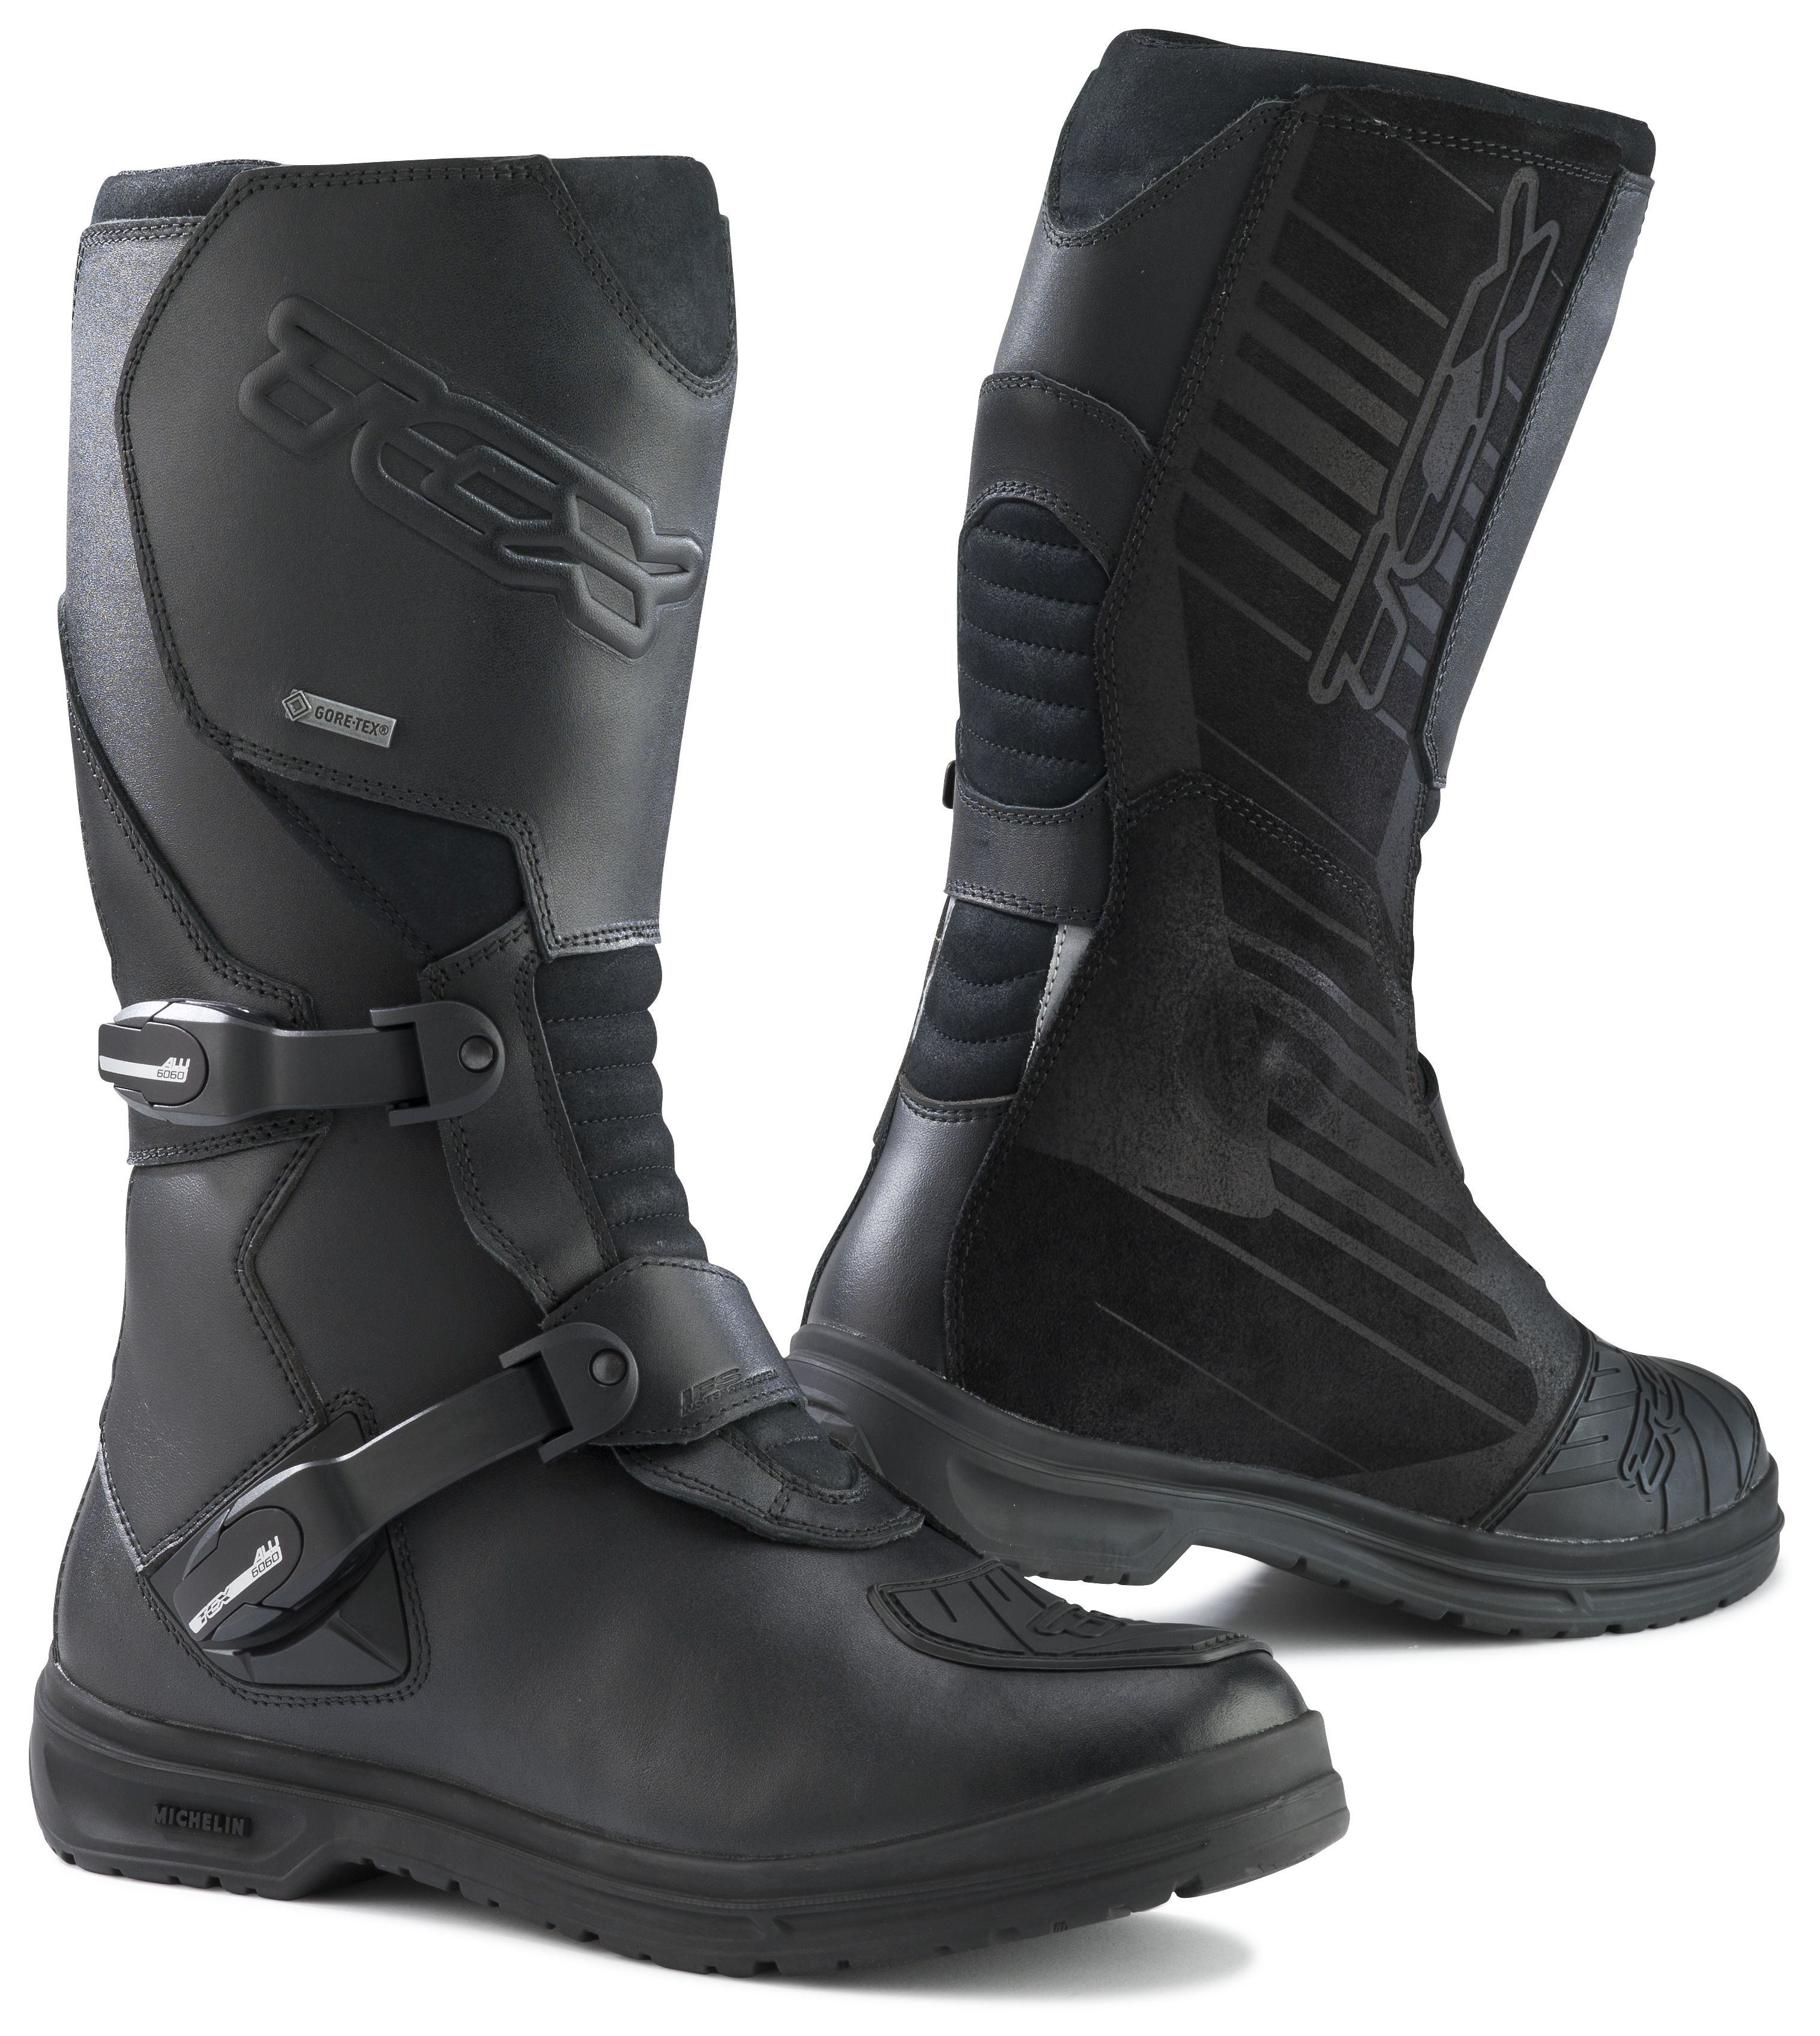 Tcx Infinity Evo Gore Tex Boots Cycle Gear